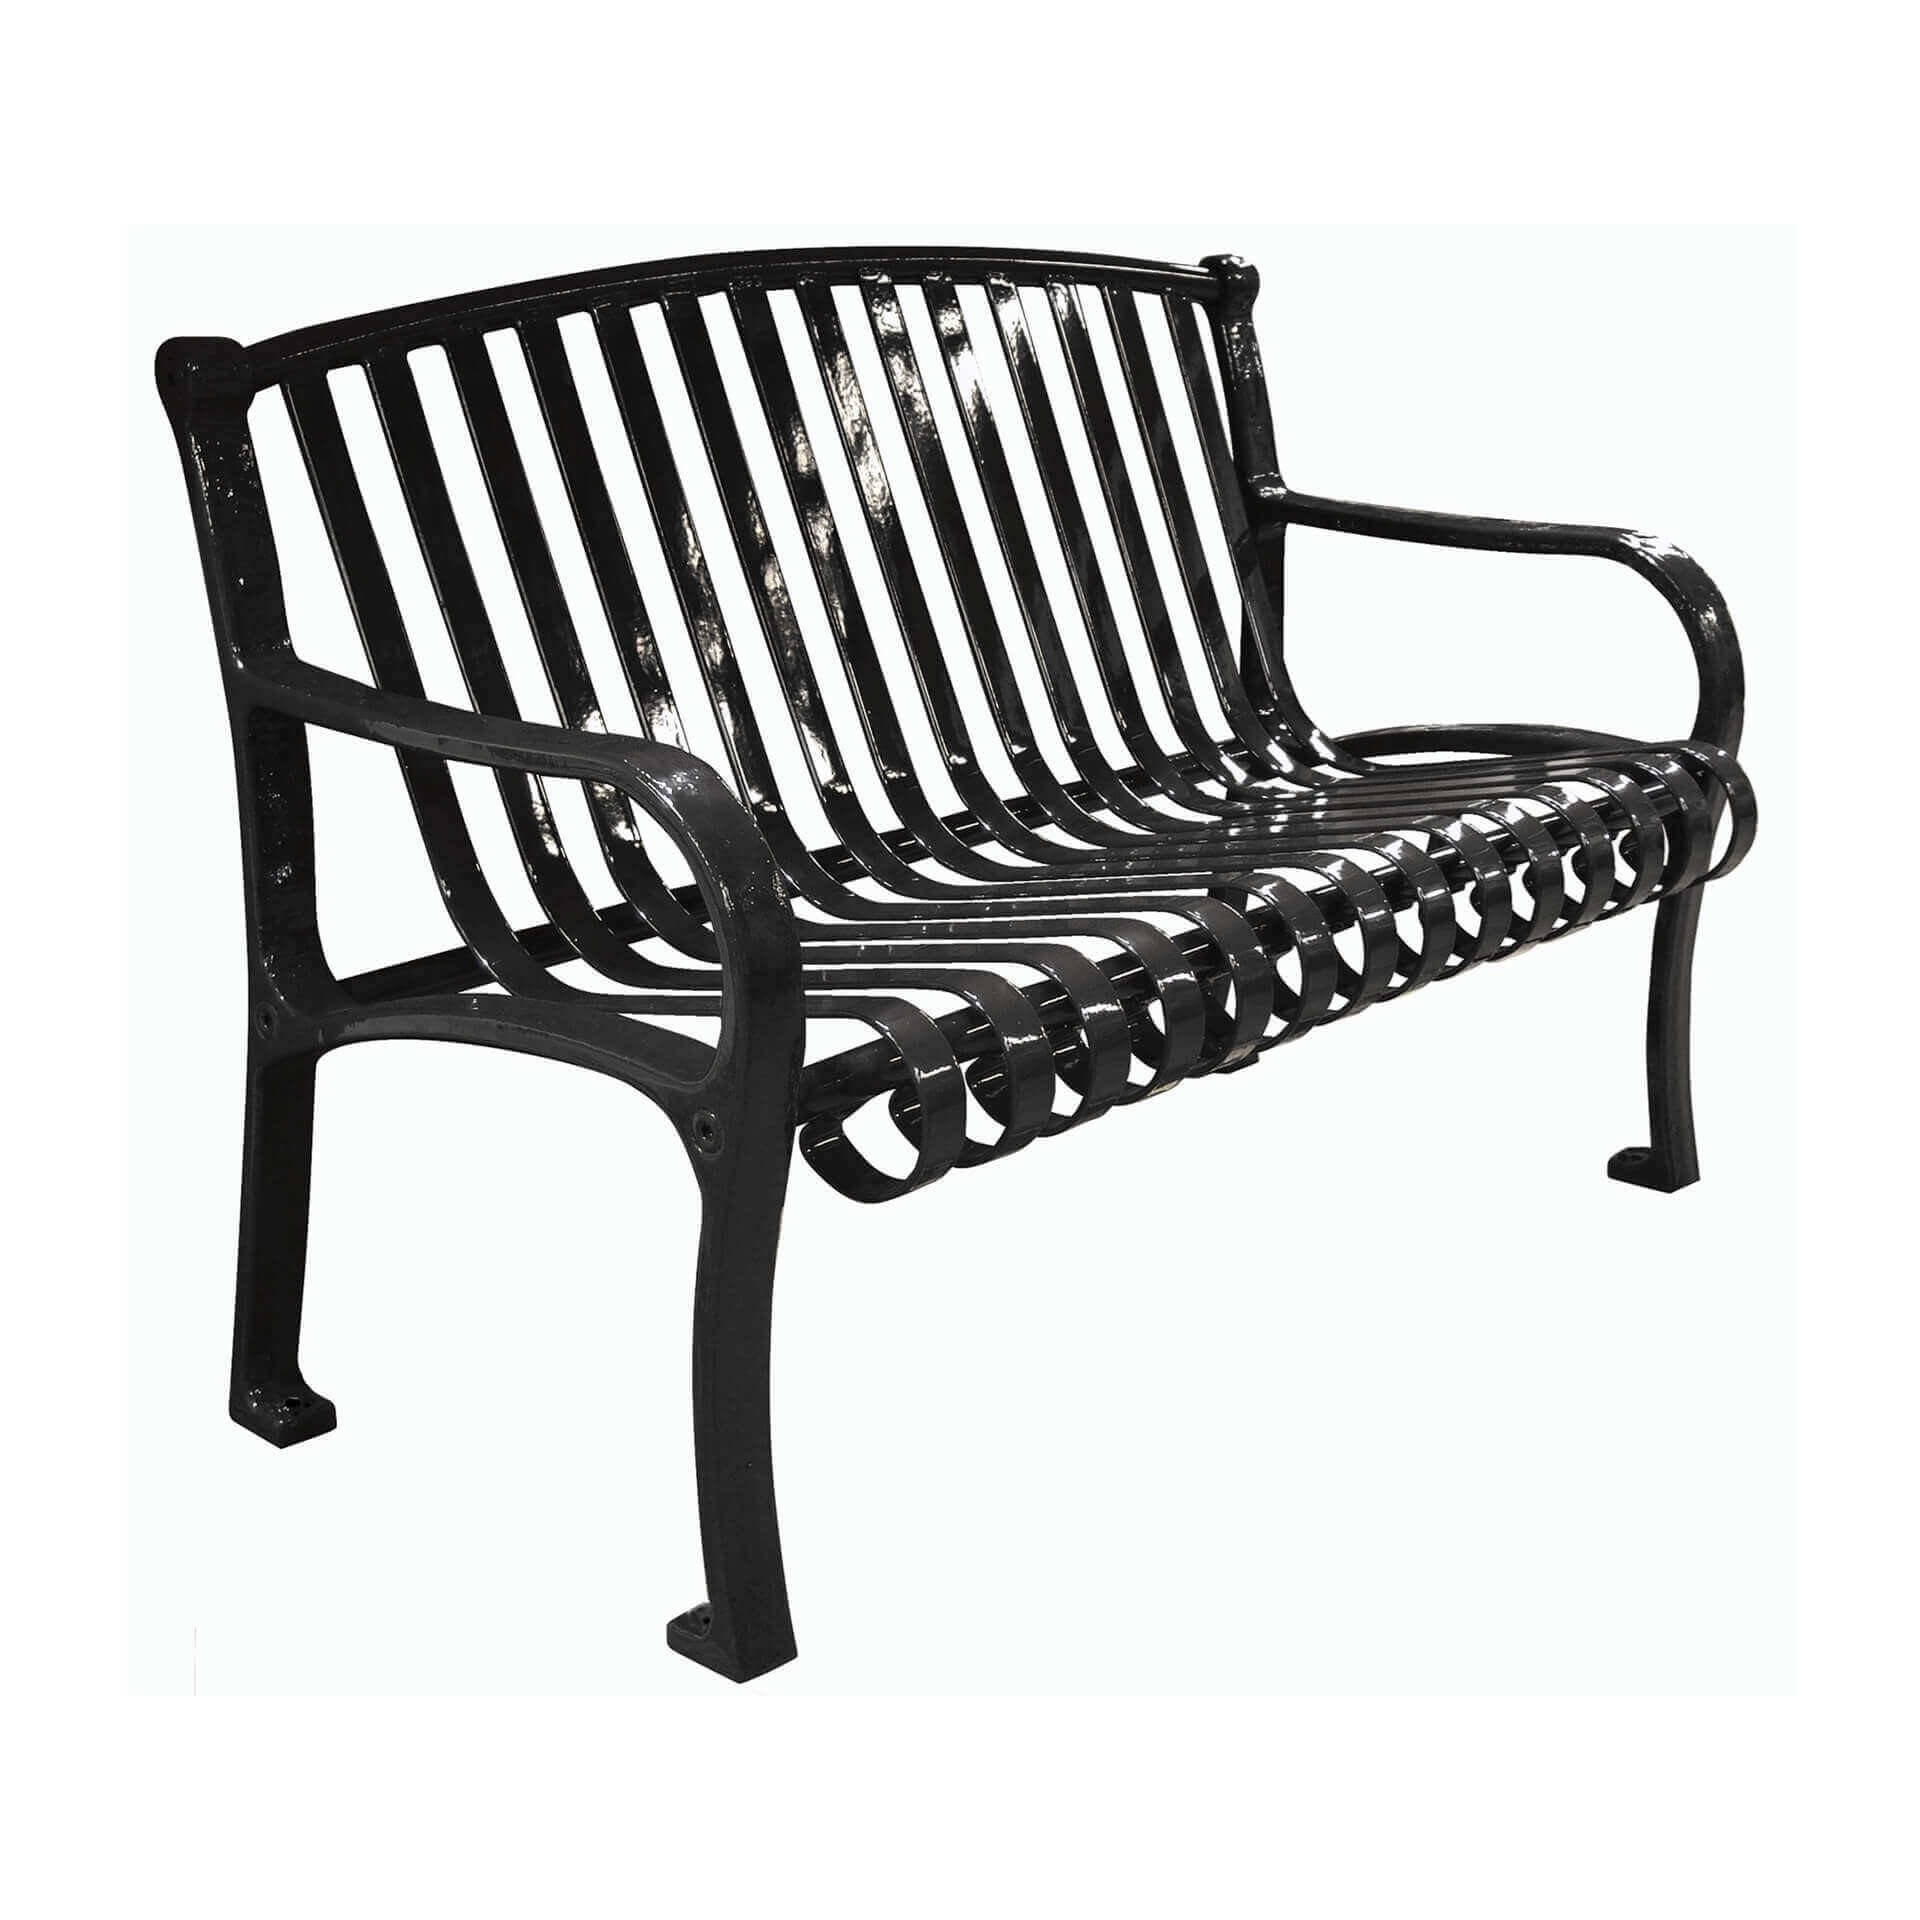 main eldert benches steel small bruhsed display gridiron bench brushed stainless